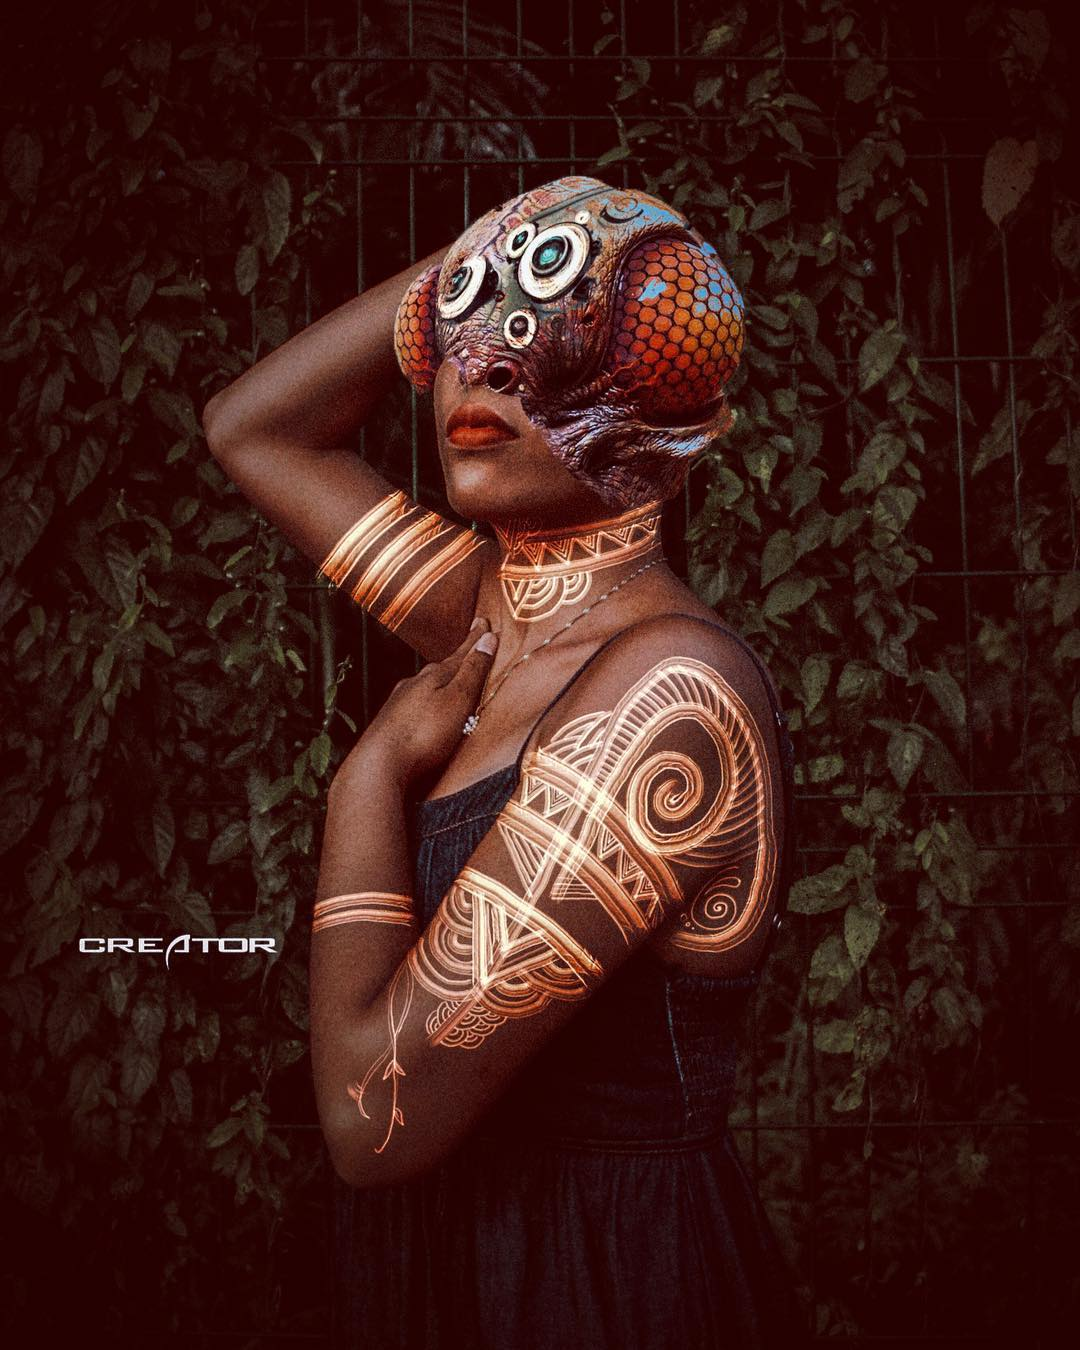 56213761 146858769694334 2874955668846915073 n - The Nigerian Anonymous Digital Artist whose Work Will Make You Shiver!